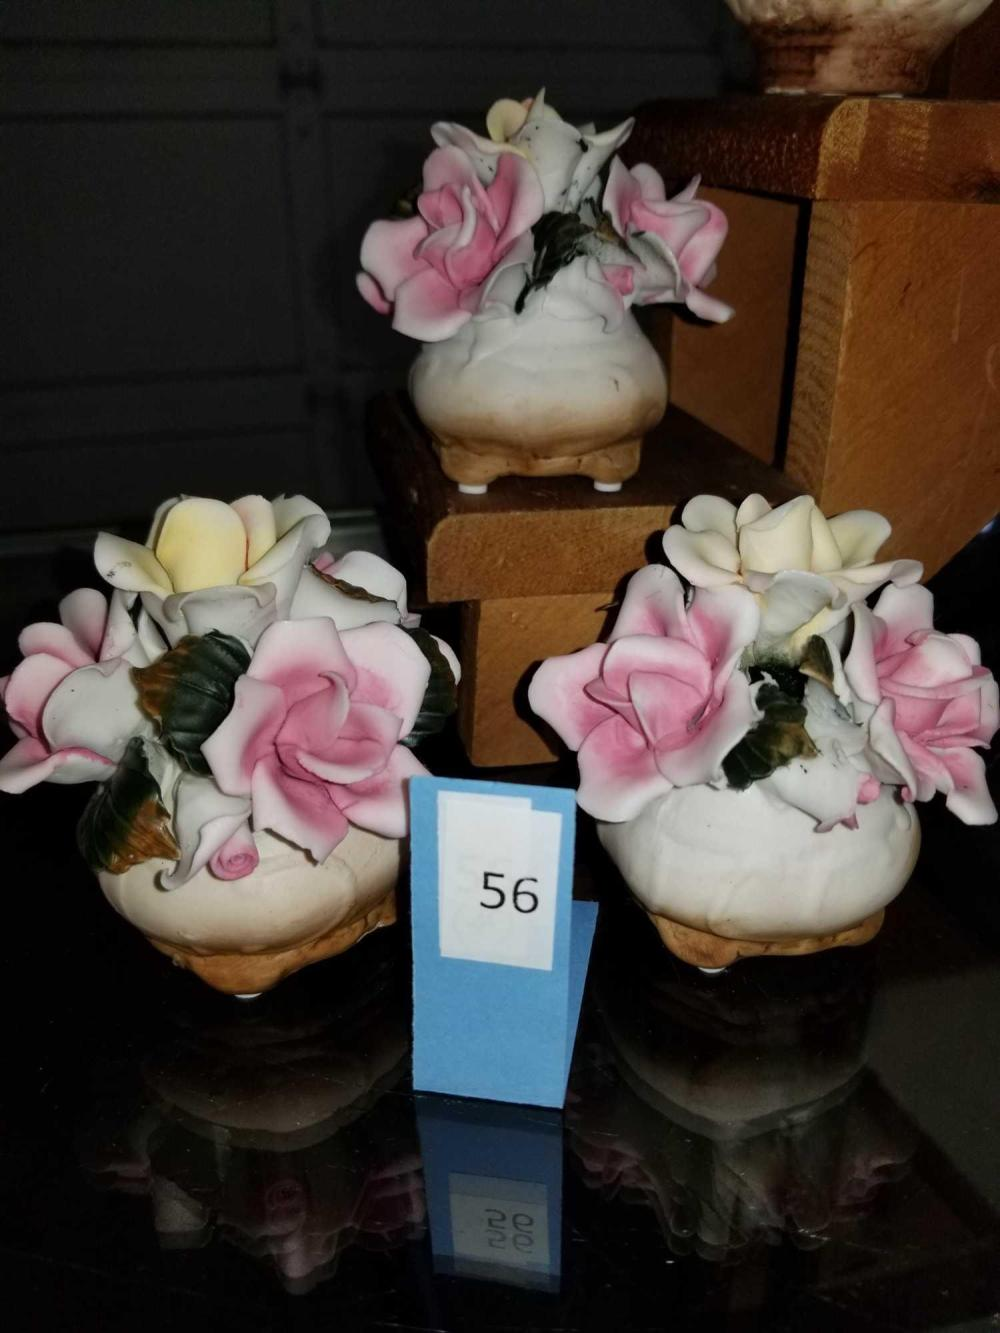 MINIATURE BISQUE  POTS OF ROSES FIGURINES - 3 ITEMS